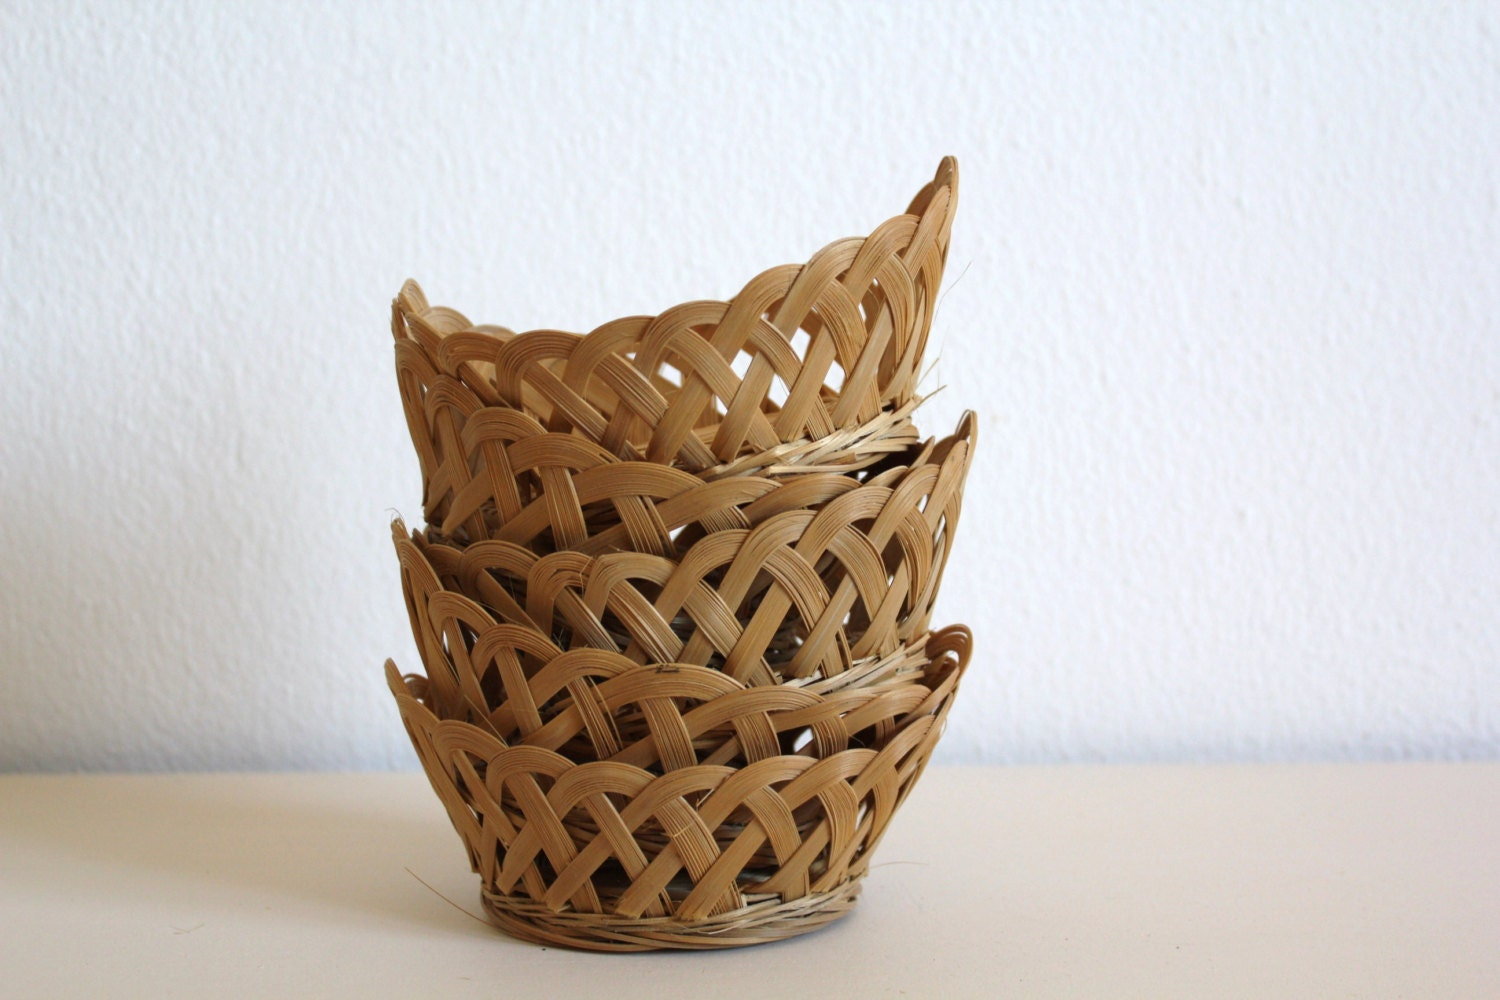 Handmade Basket Gifts : Sale off vintage wicker small baskets handmade by